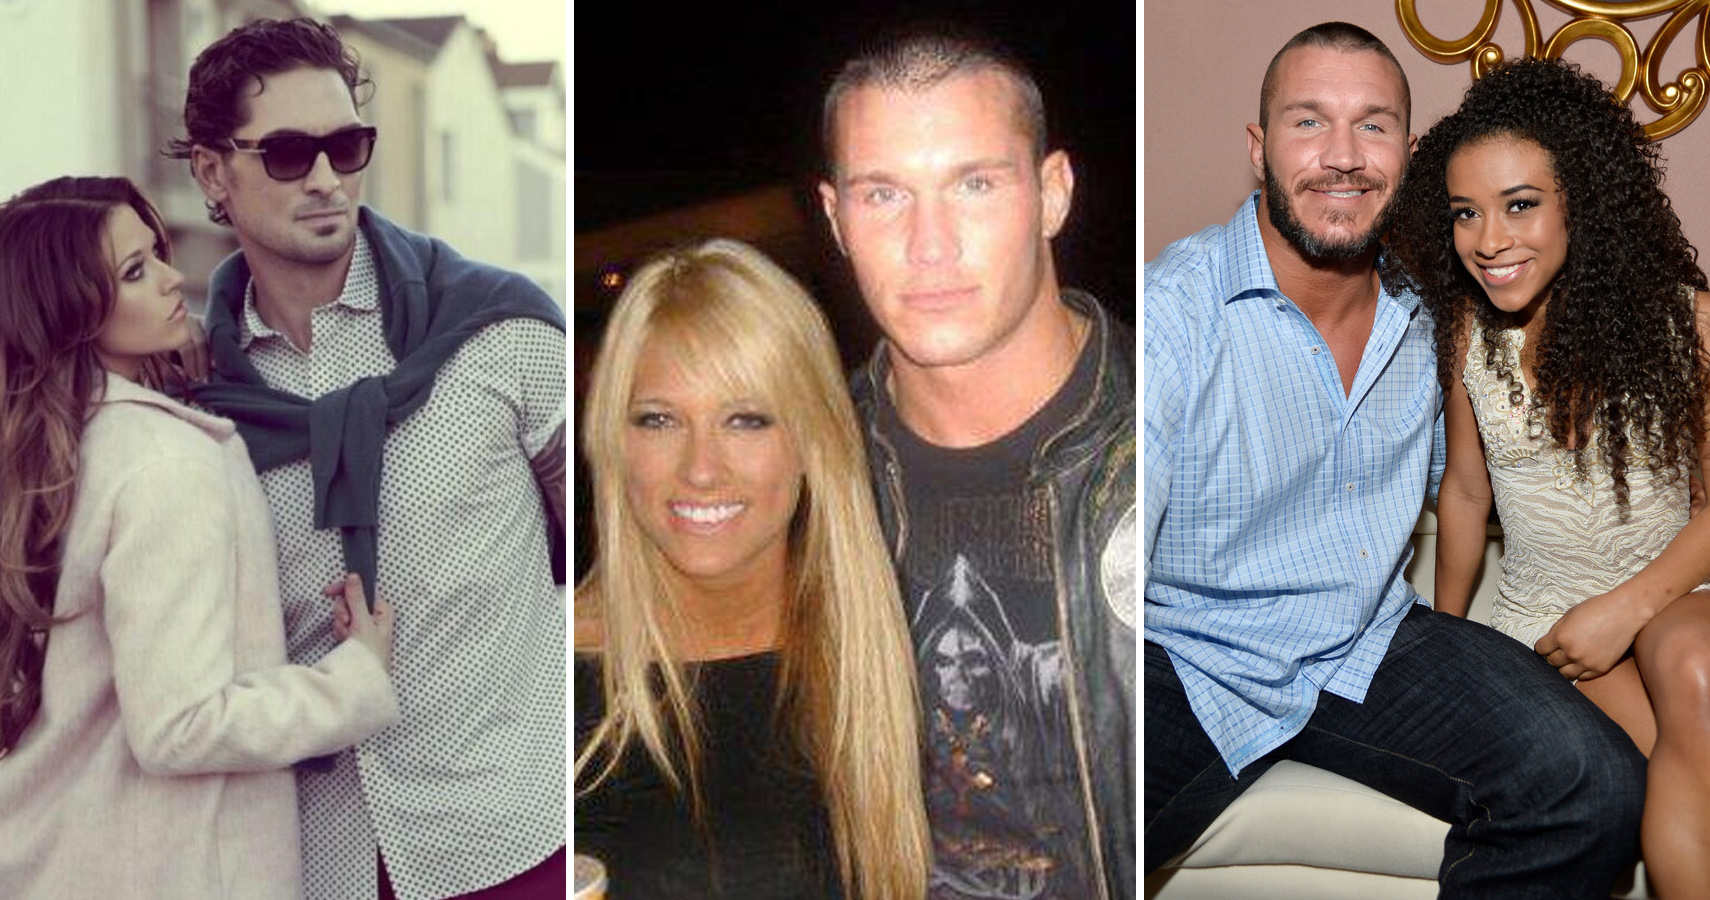 paige dating randy orton Randy orton is dating kim marie kessler after a five-year marriage to samantha speno, randy orton has found love again in the arms of kim.